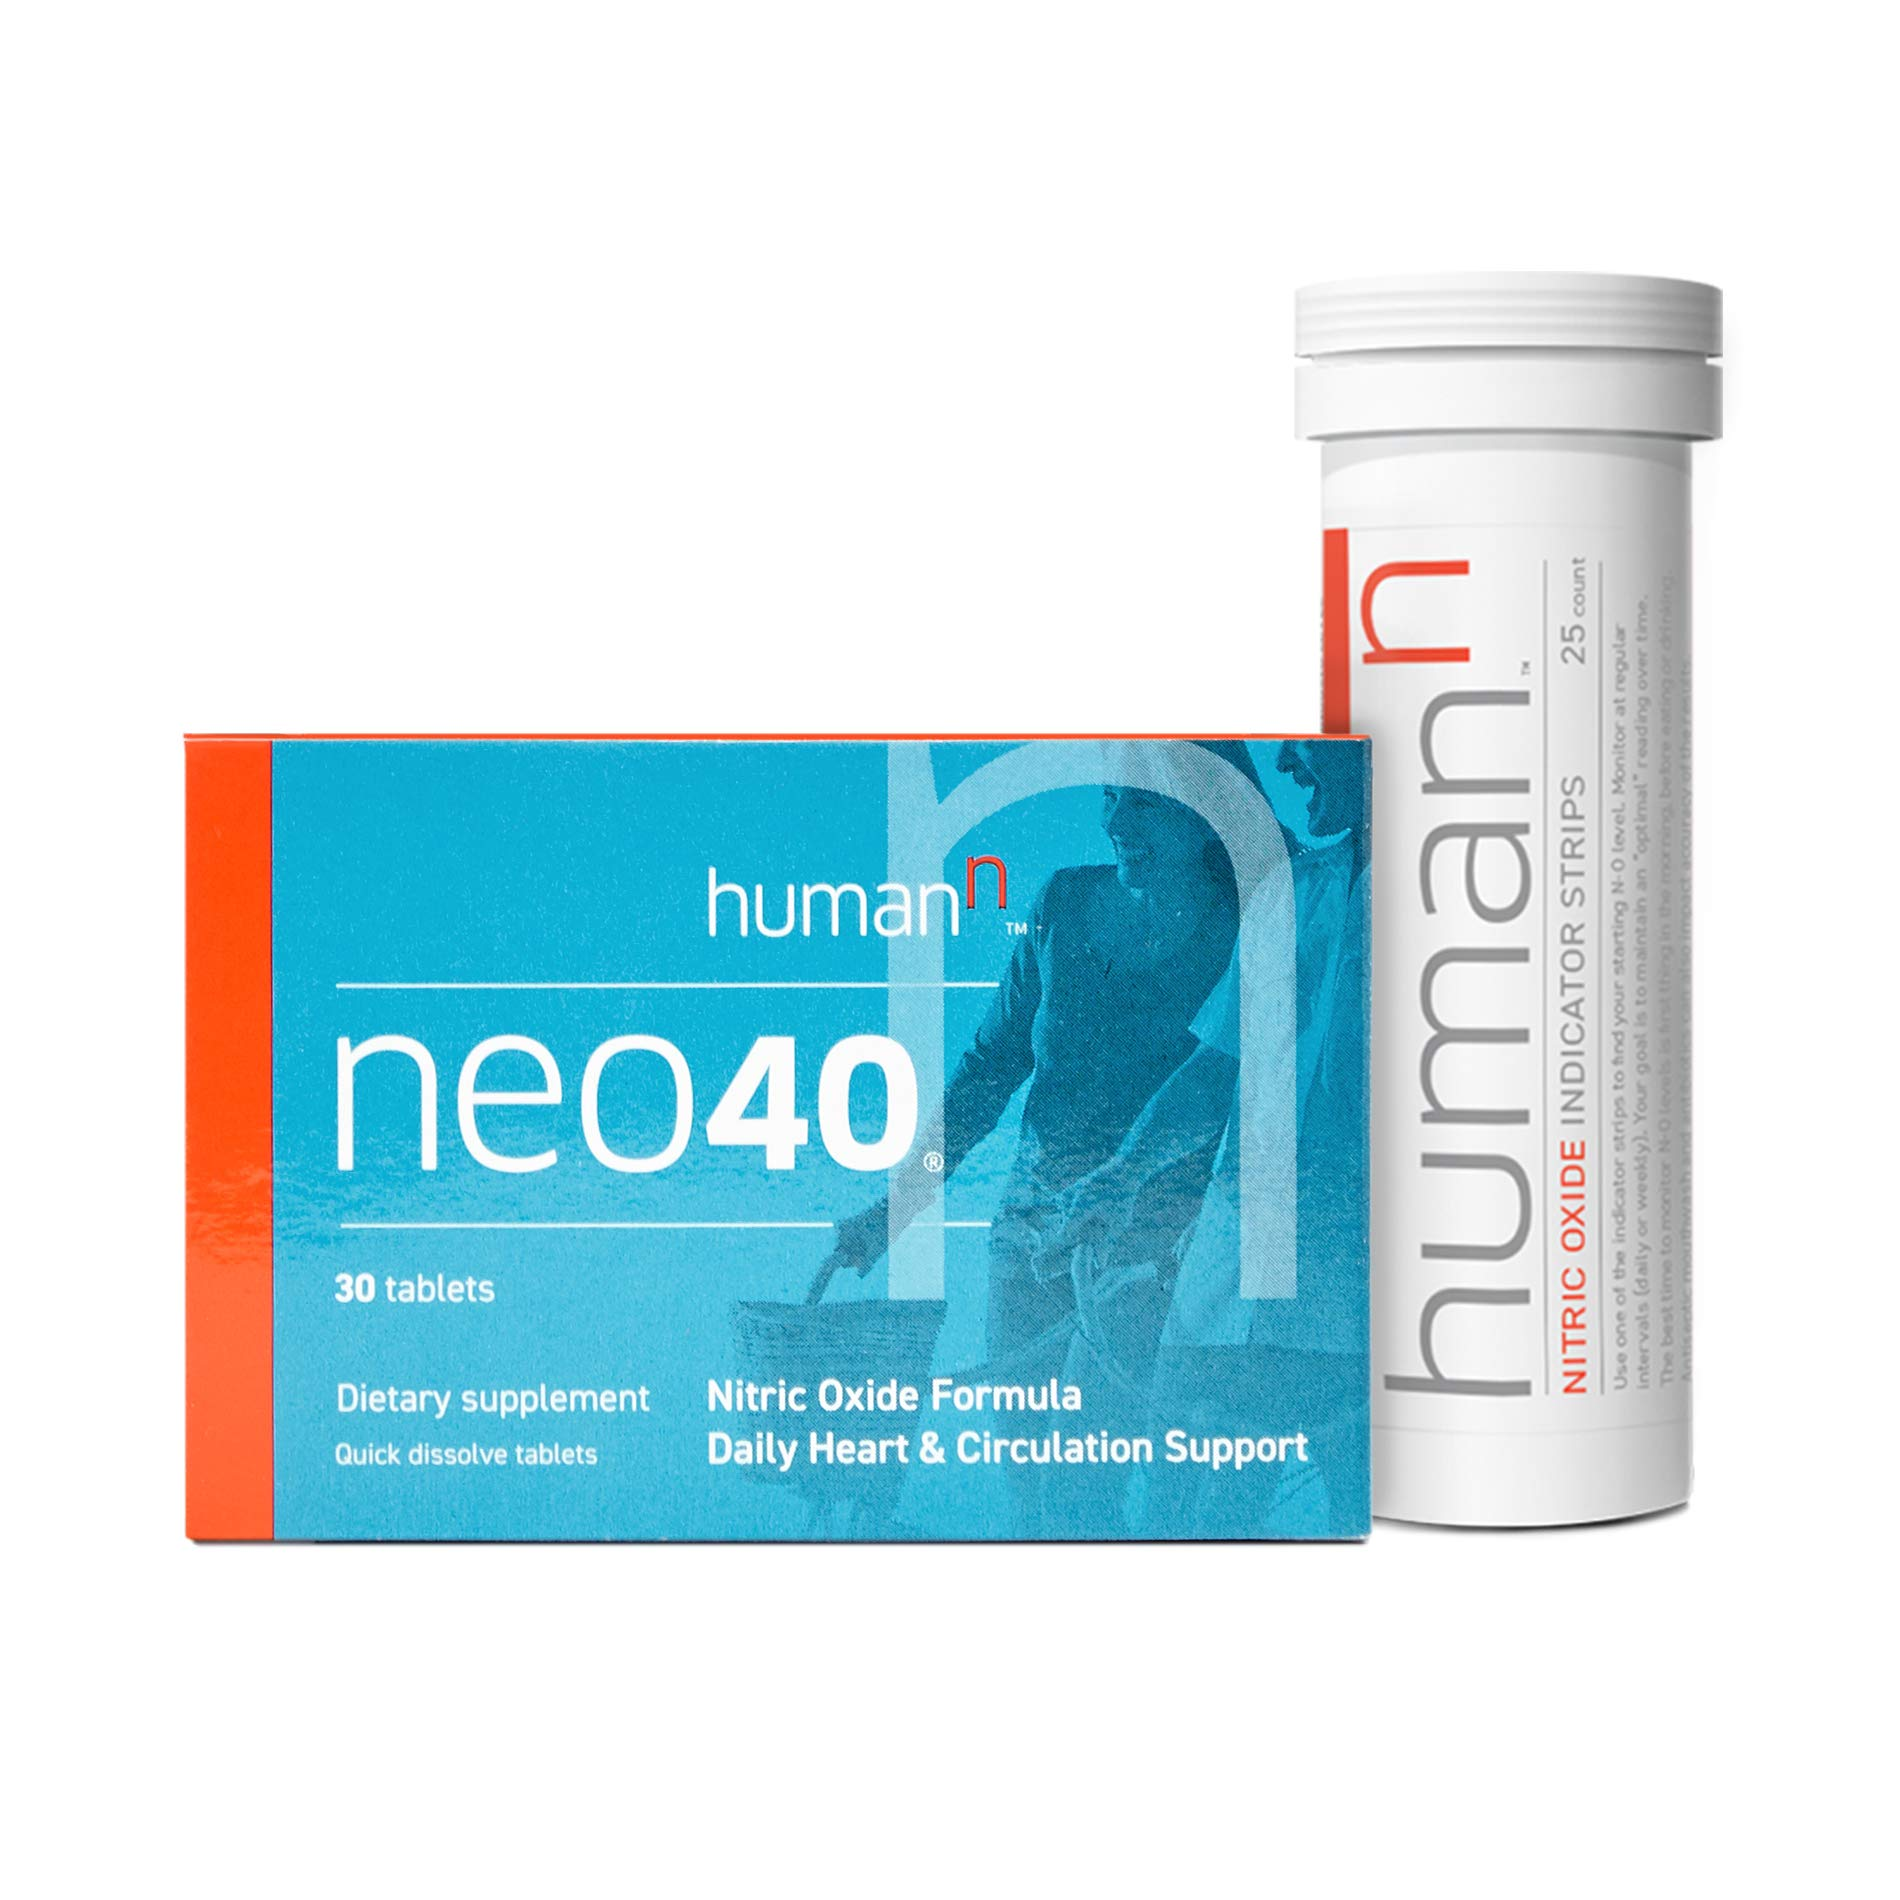 HumanN Neo40 Daily Heart and Circulation Support Nitric Oxide Boosting Supplement with N-O Indicator Test Strips (30 Tablets with 25 Strips) by HumanN